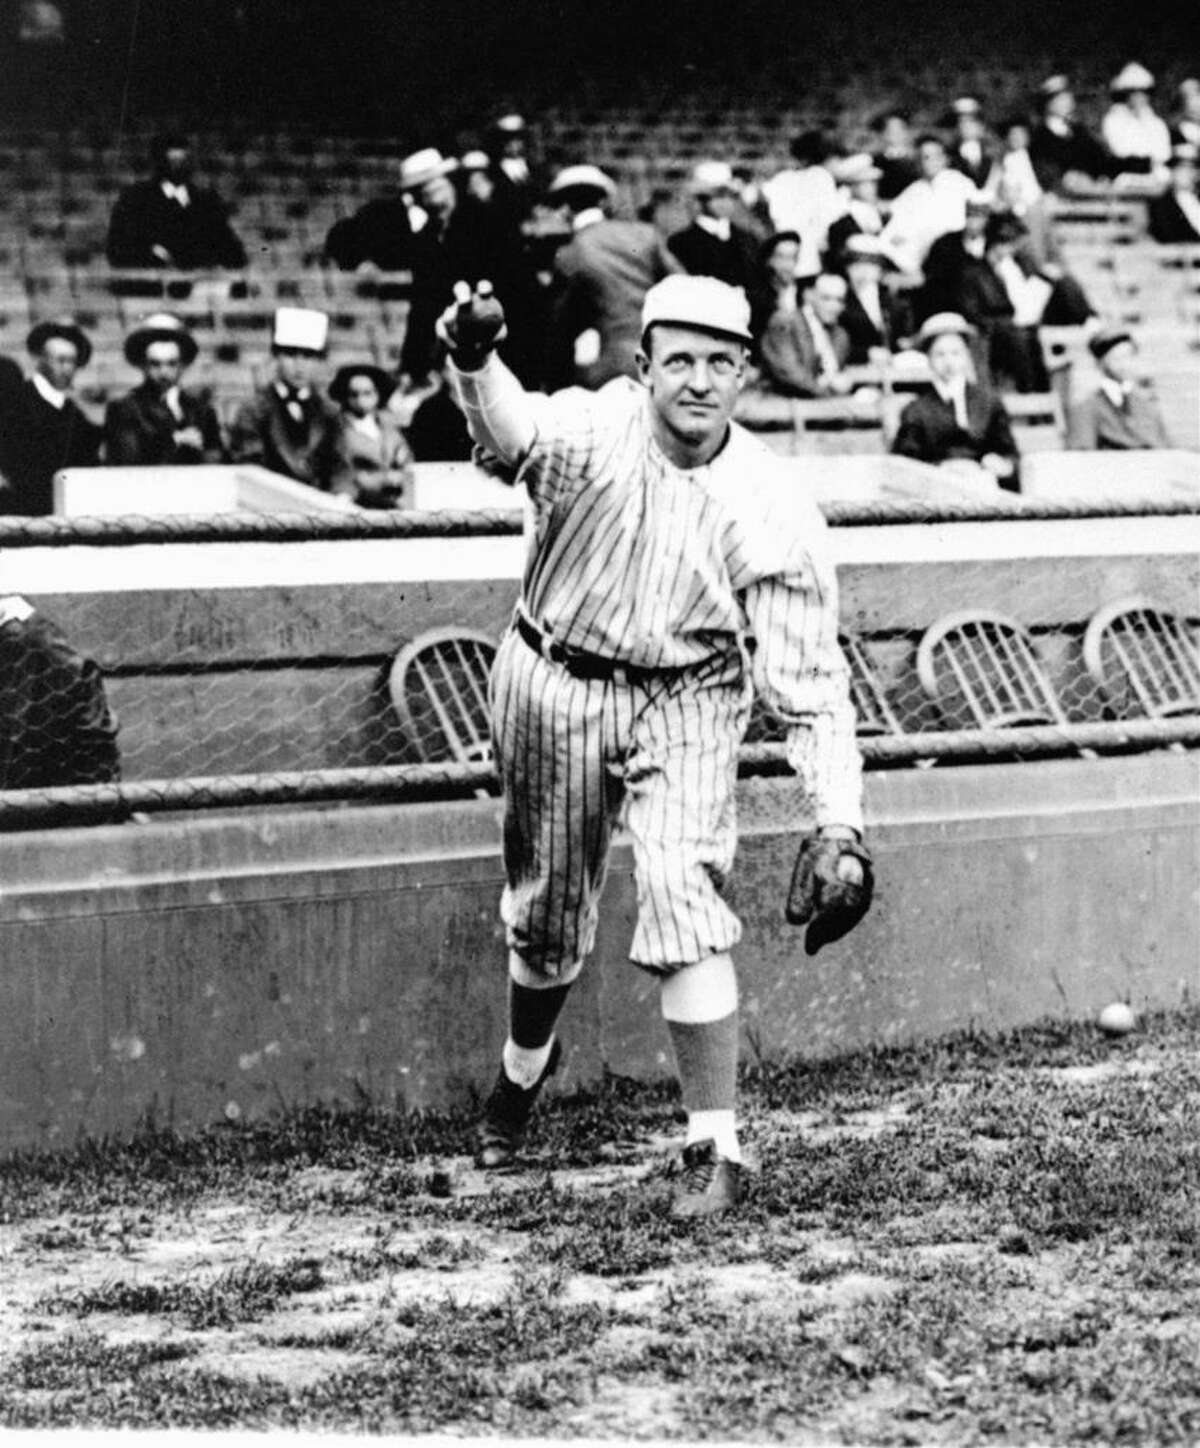 A posed action photo, circa 1910, of New York Giants' star pitcher, Christy Mathewson, who won 373 games during his illustrious career which spanned 17 years, from 1900 to 1916. (AP Photo)